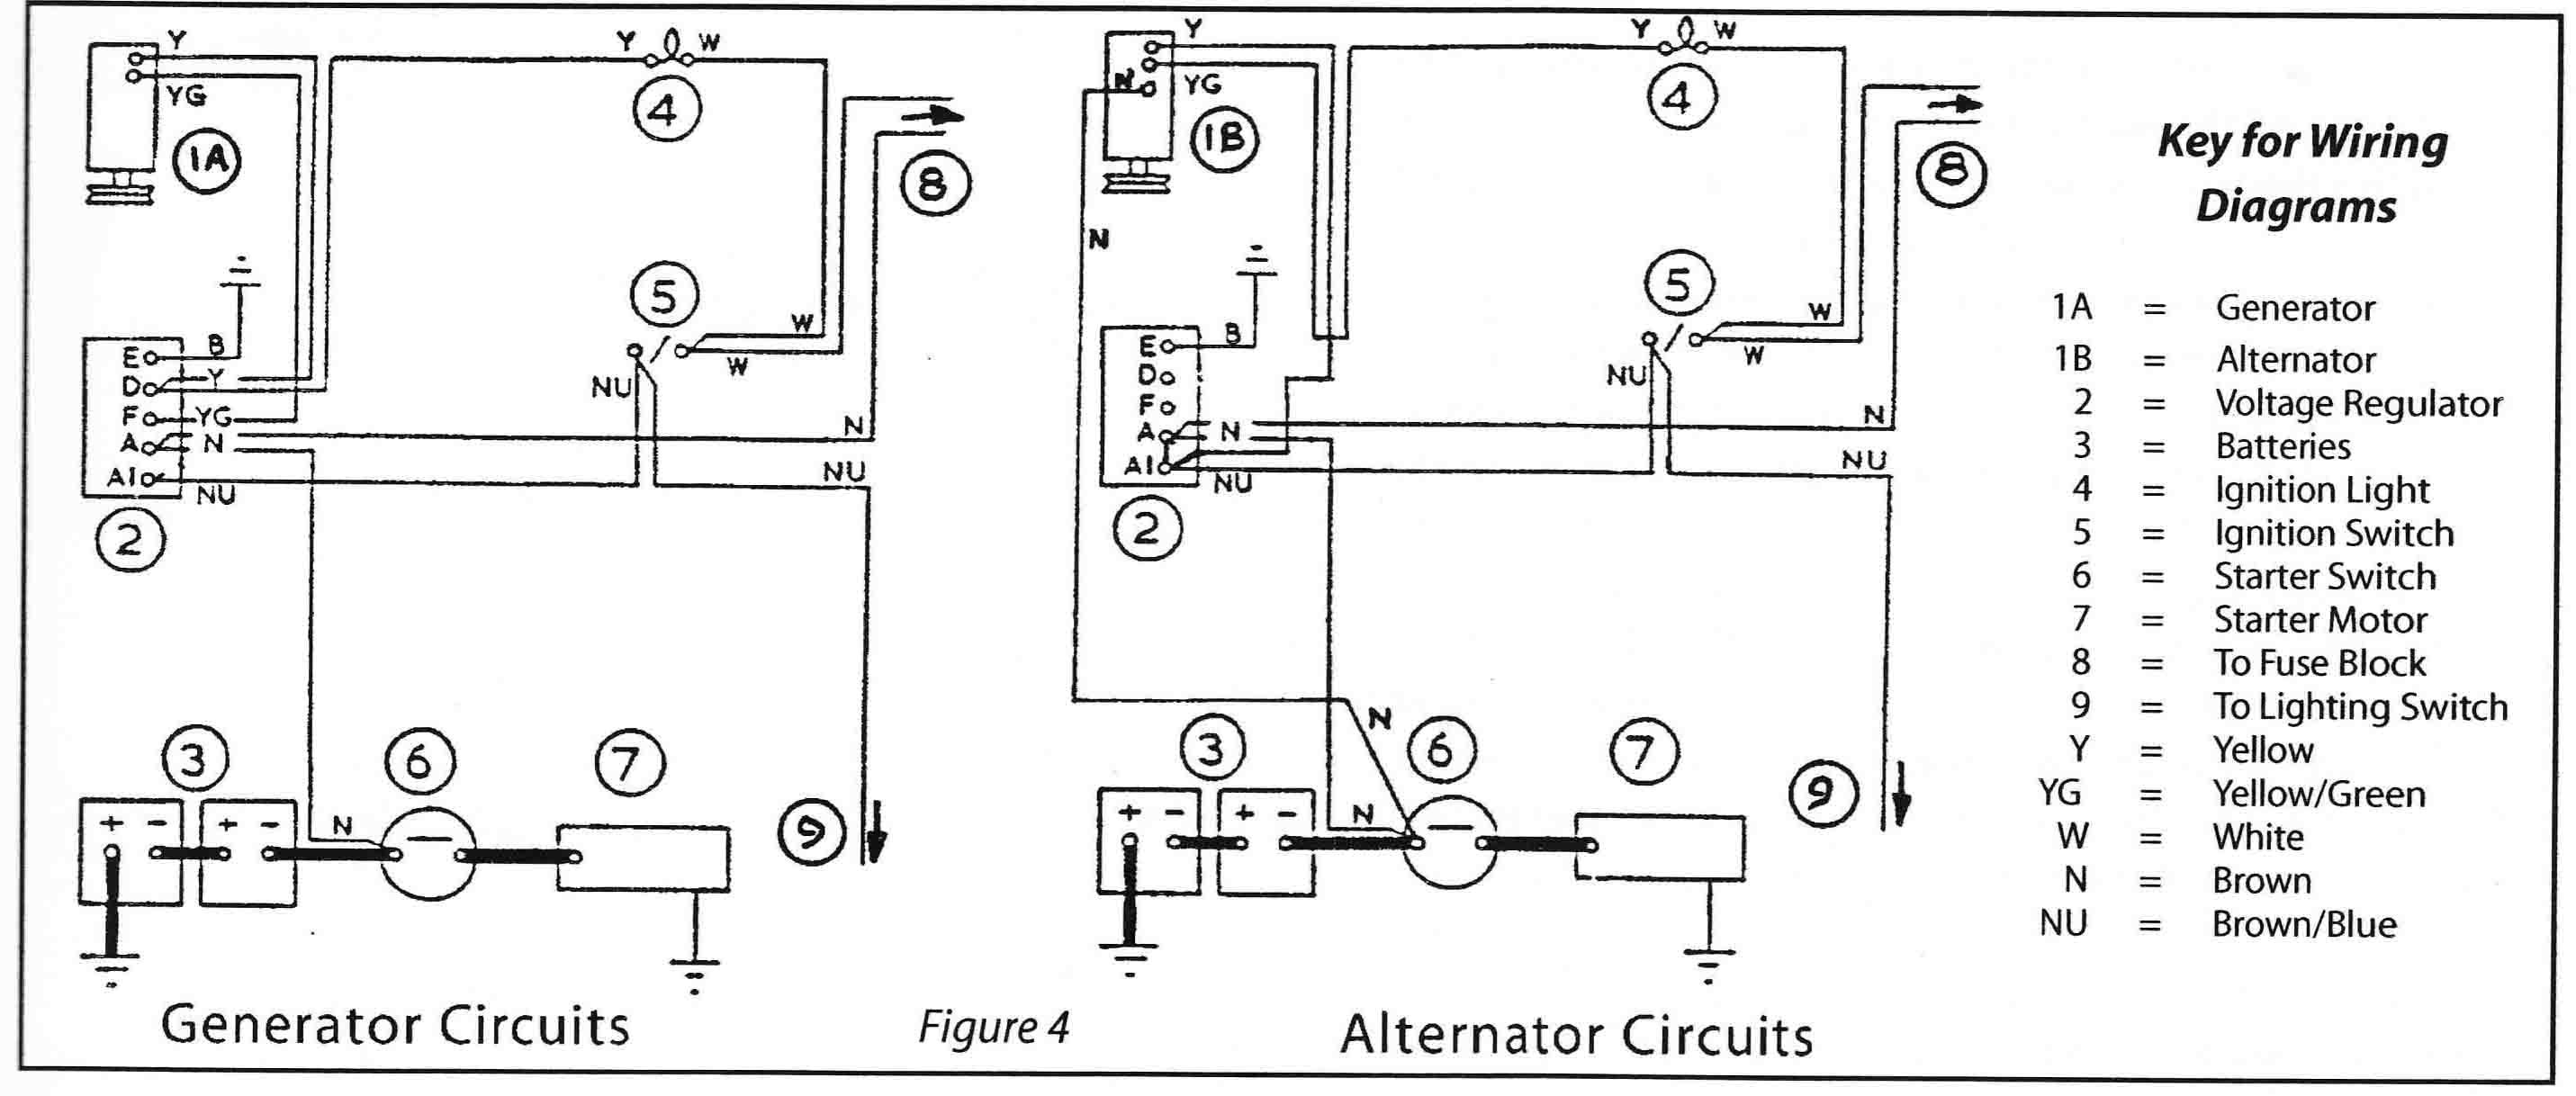 Generator To Alternator Wiring Diagram - Dolgular.com